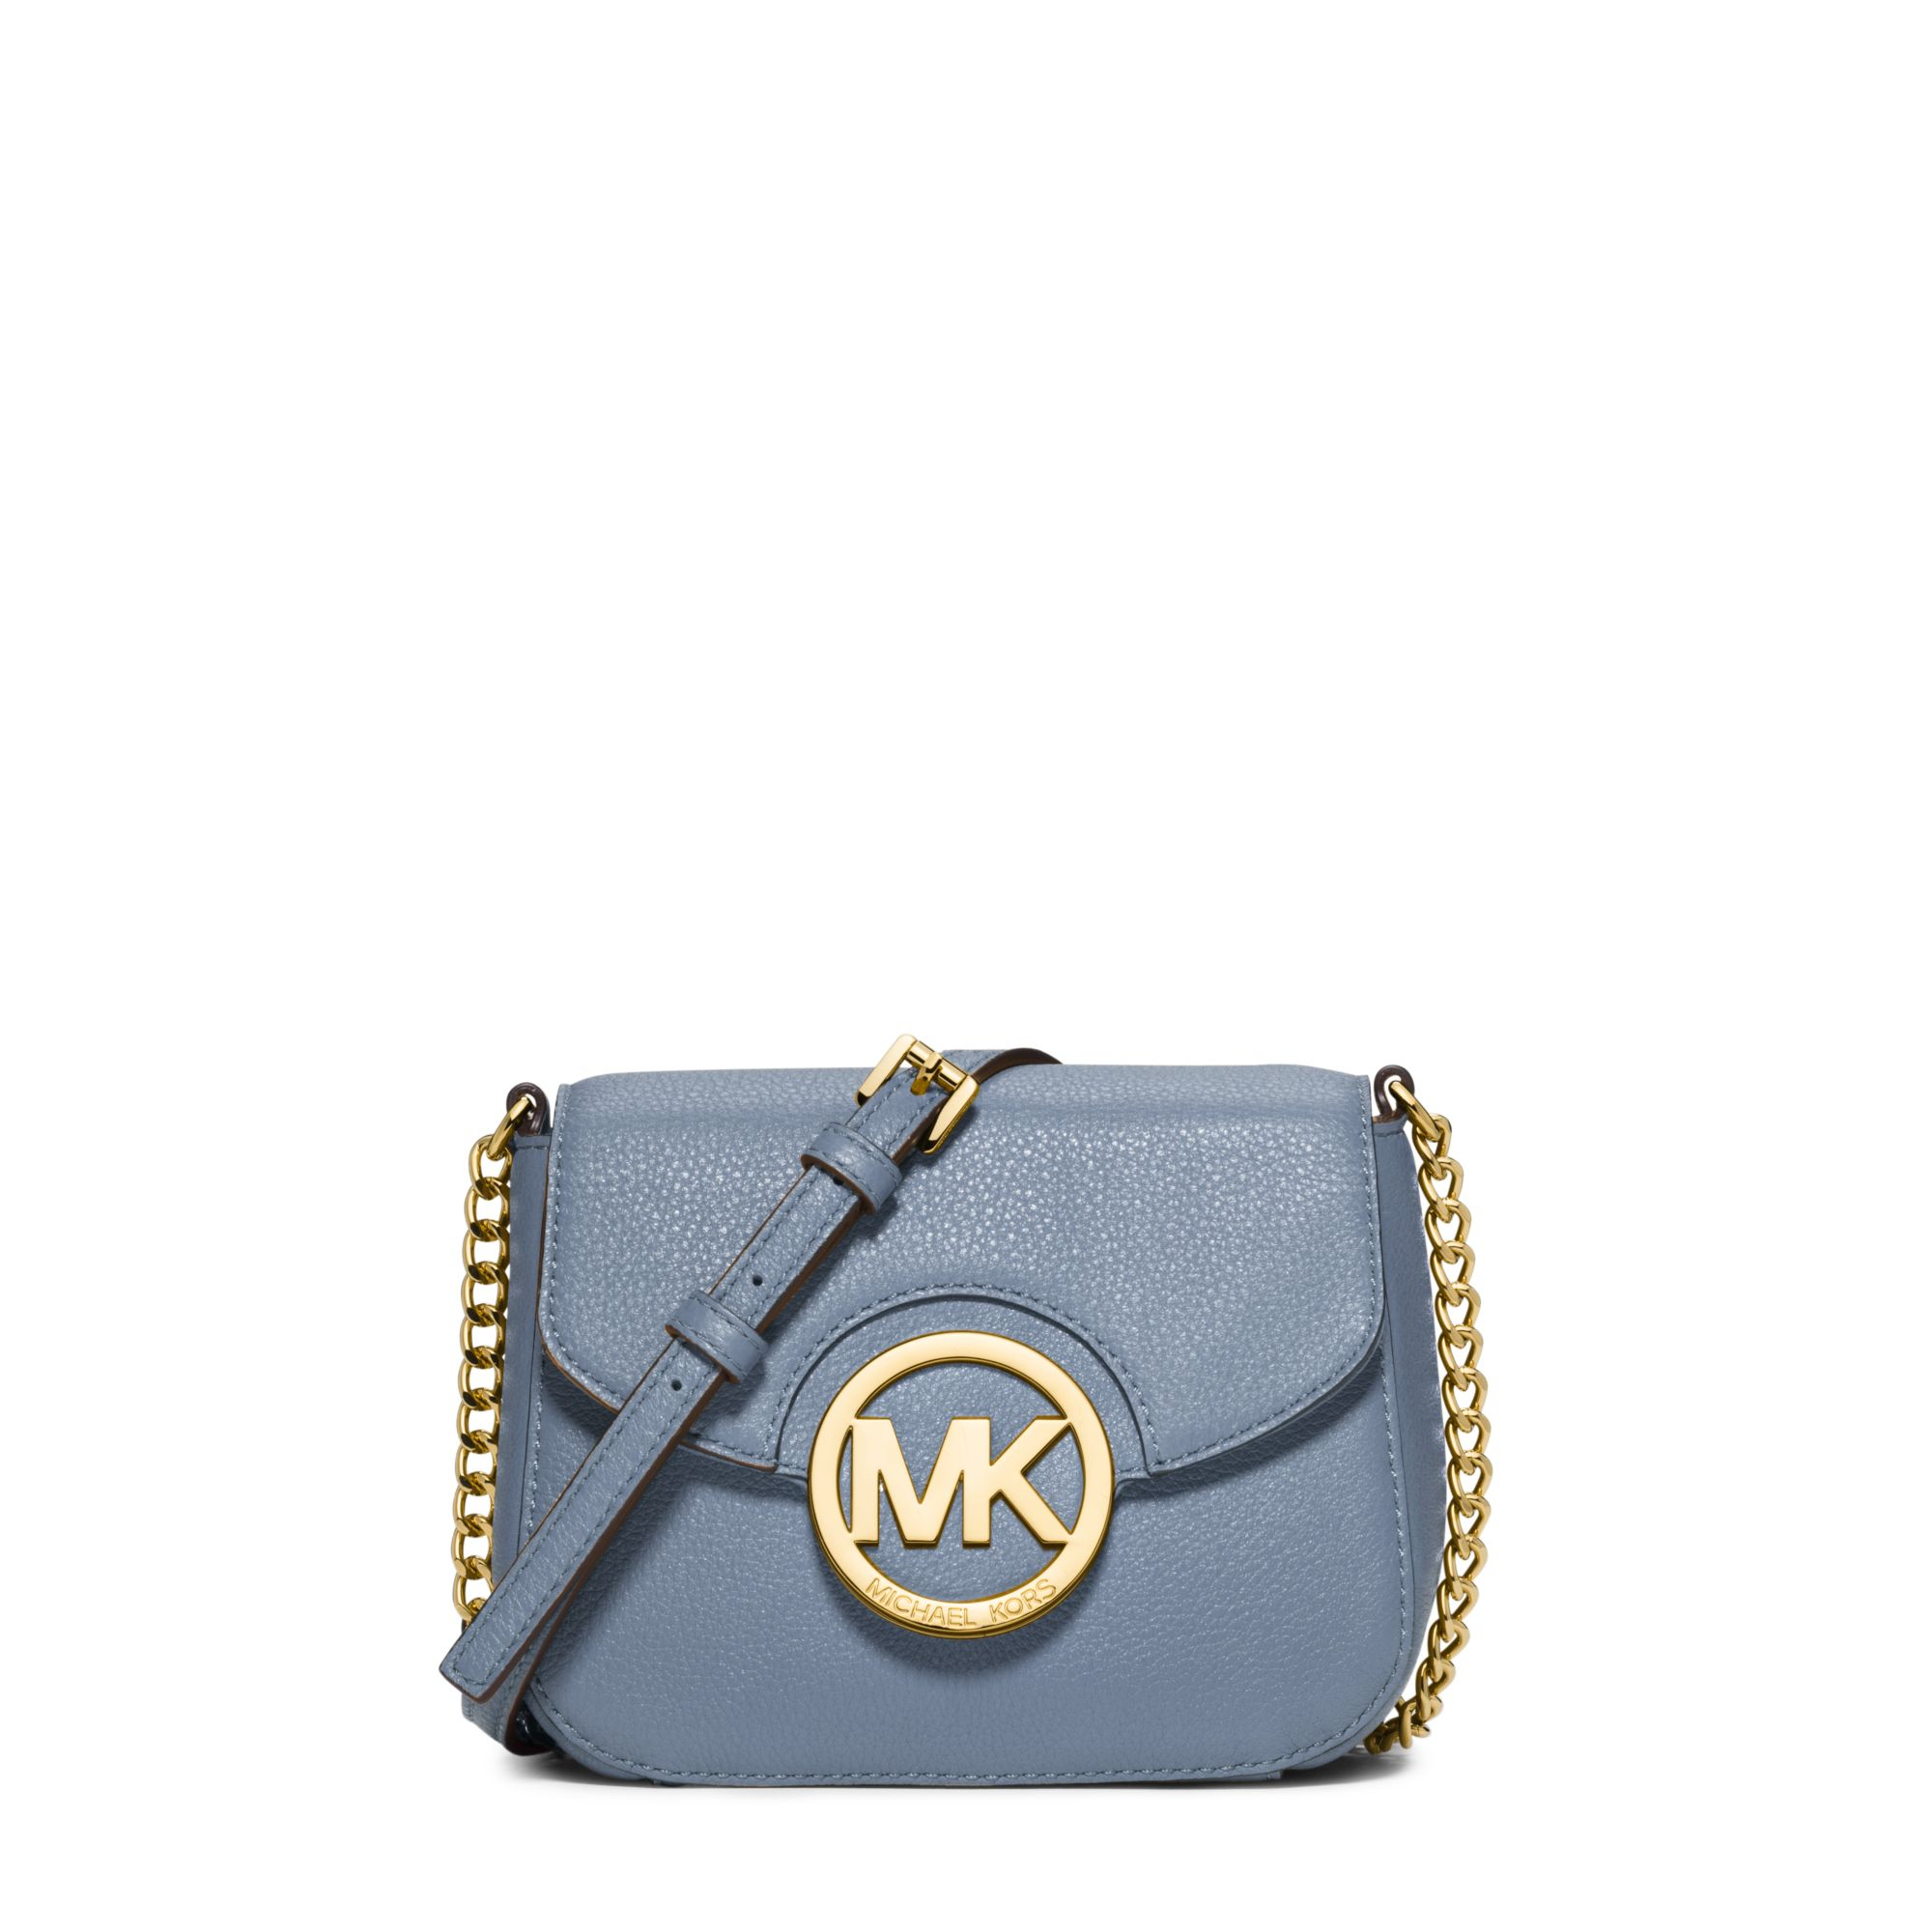 lyst michael kors fulton leather small crossbody in blue. Black Bedroom Furniture Sets. Home Design Ideas